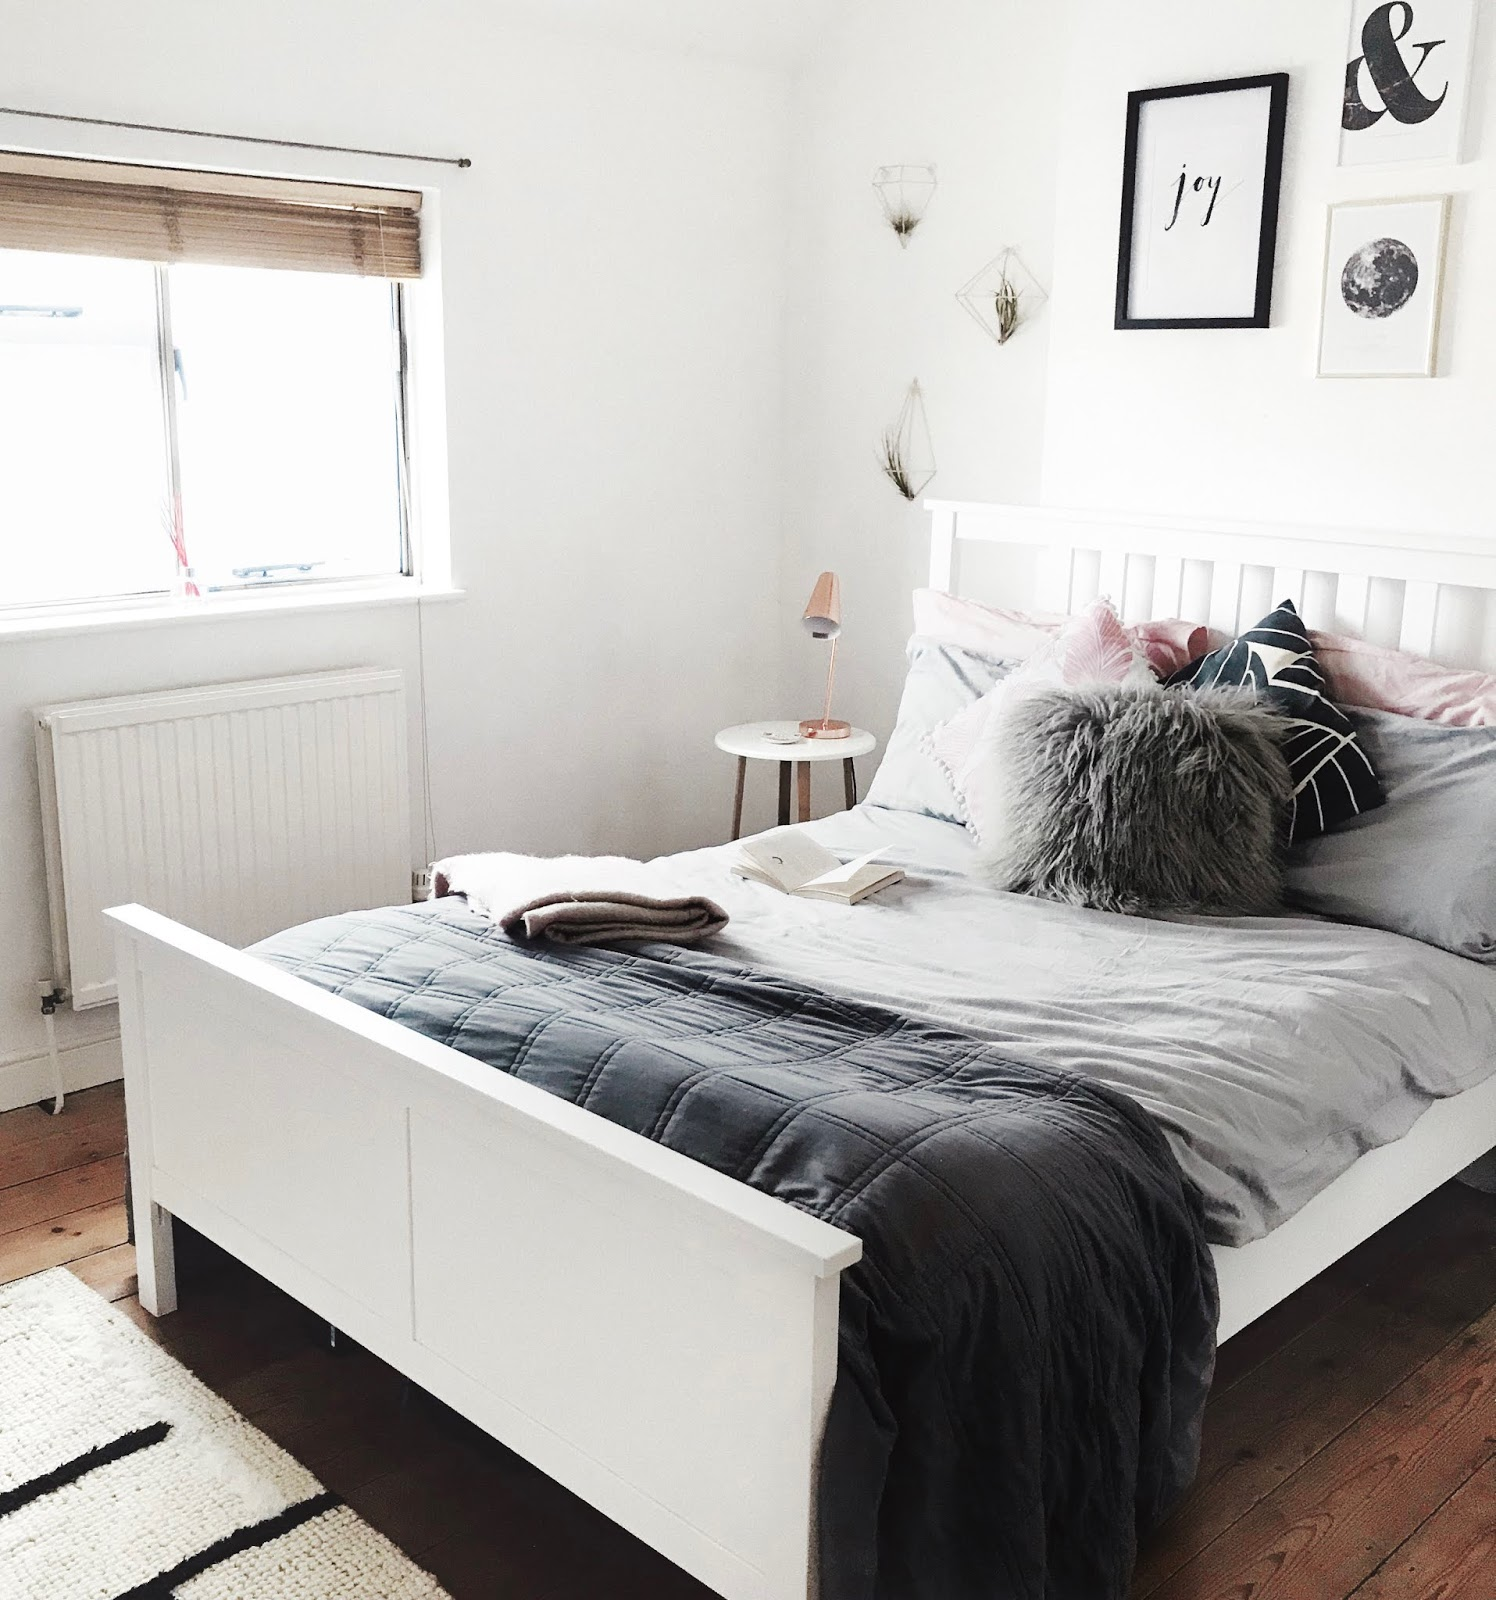 How I Want To Update My Bedroom This Year